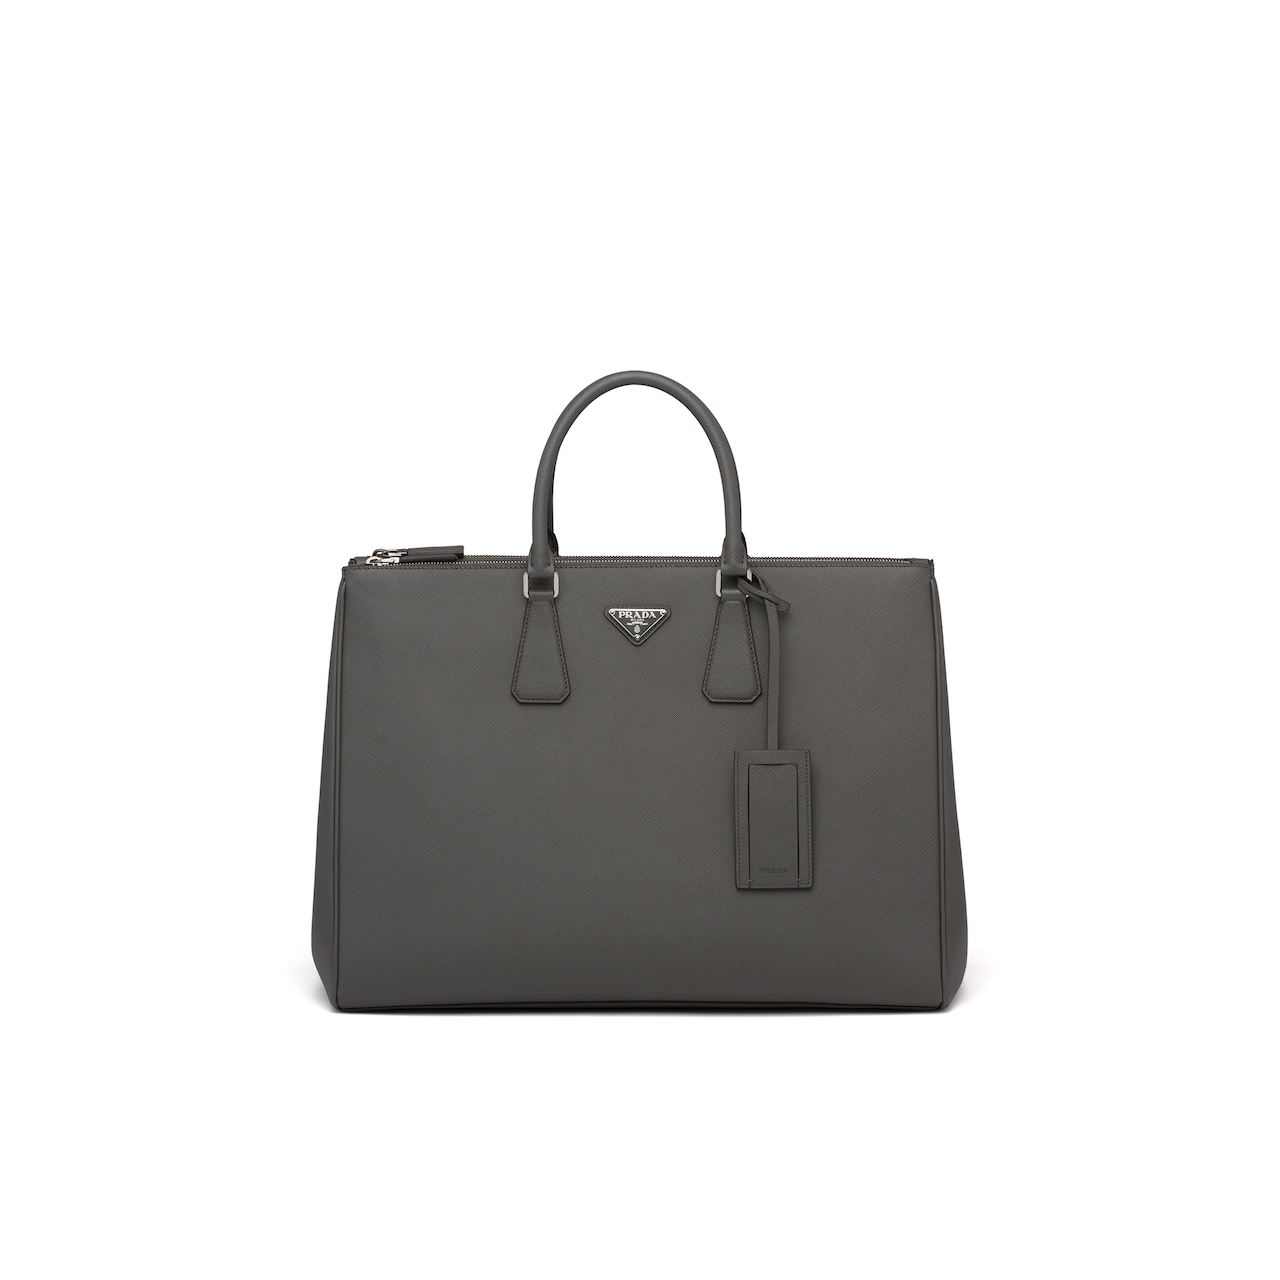 Prada Saffiano Leather Tote Bag 1